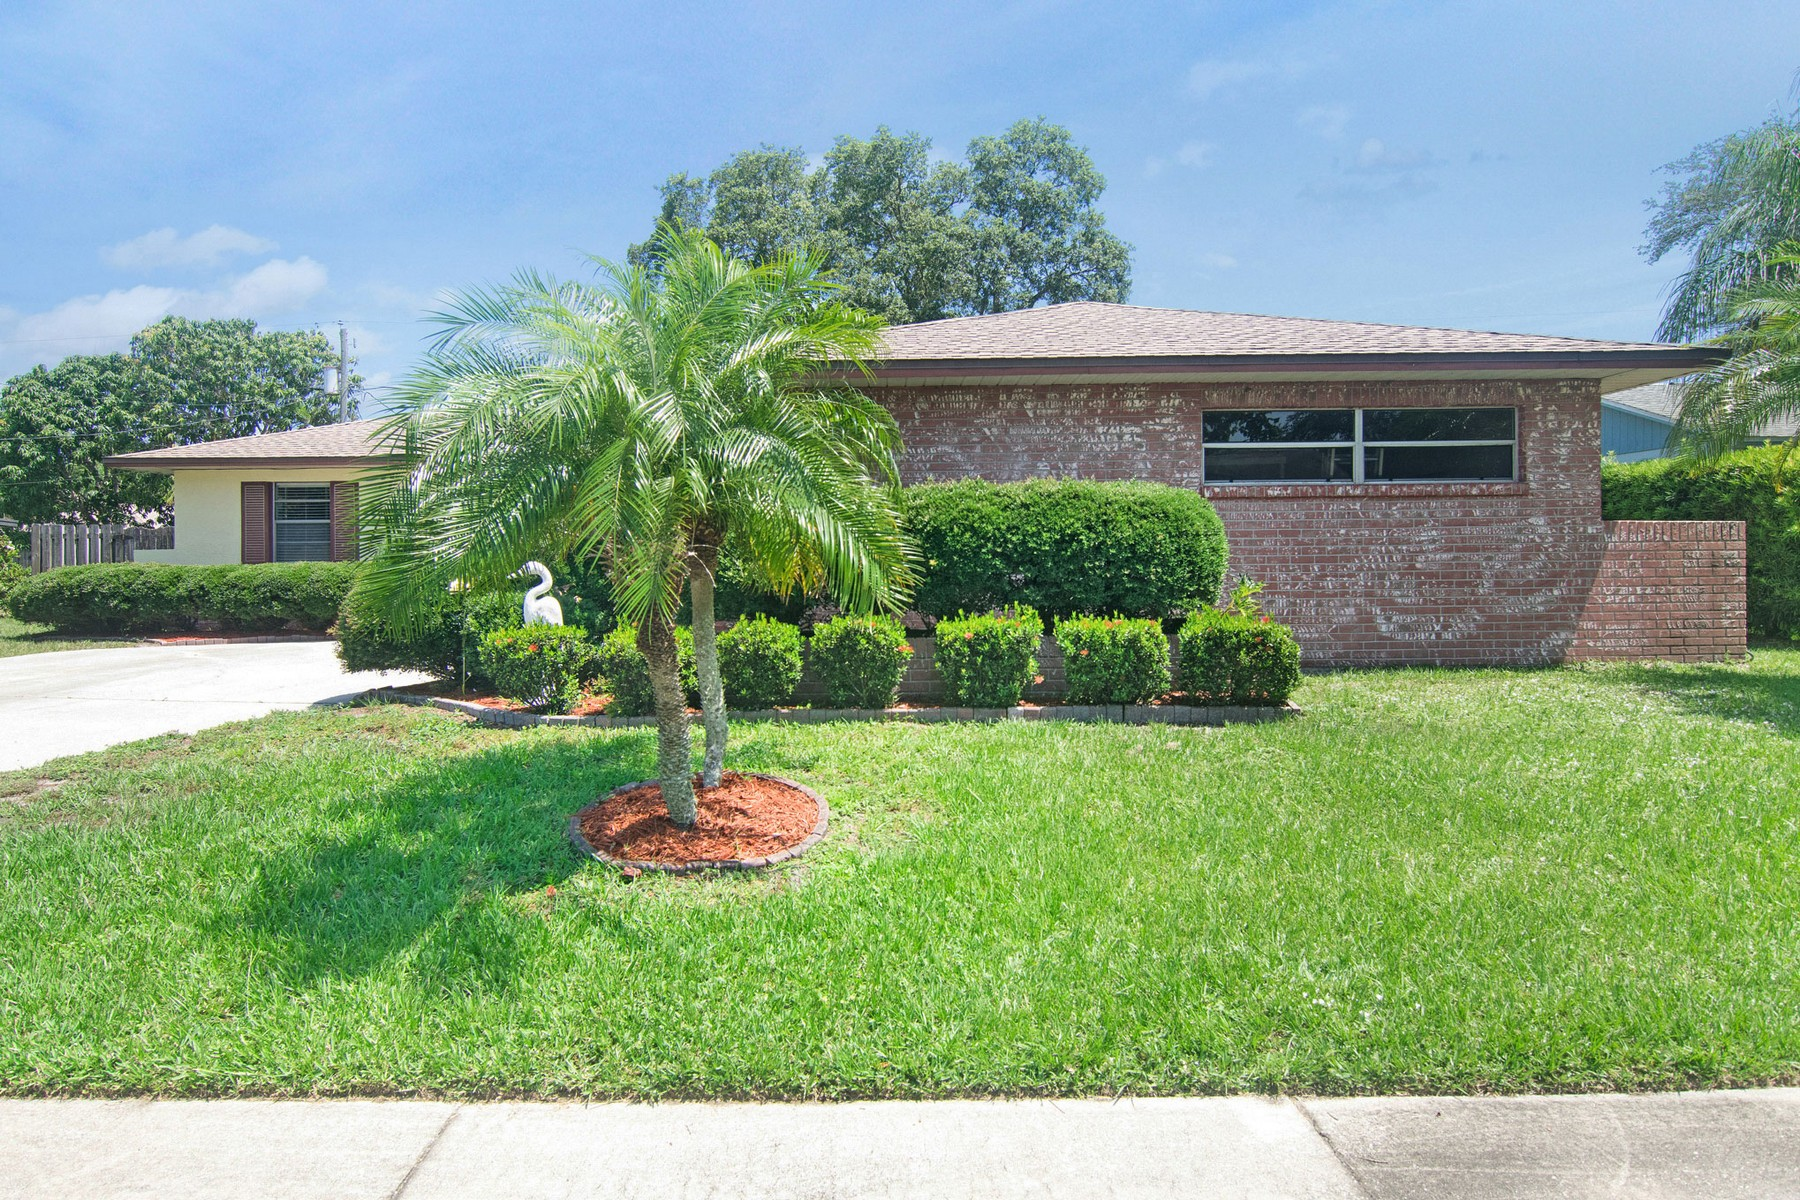 Single Family Homes for Sale at Greentree Park 1546 Spruce Road Melbourne, Florida 32935 United States